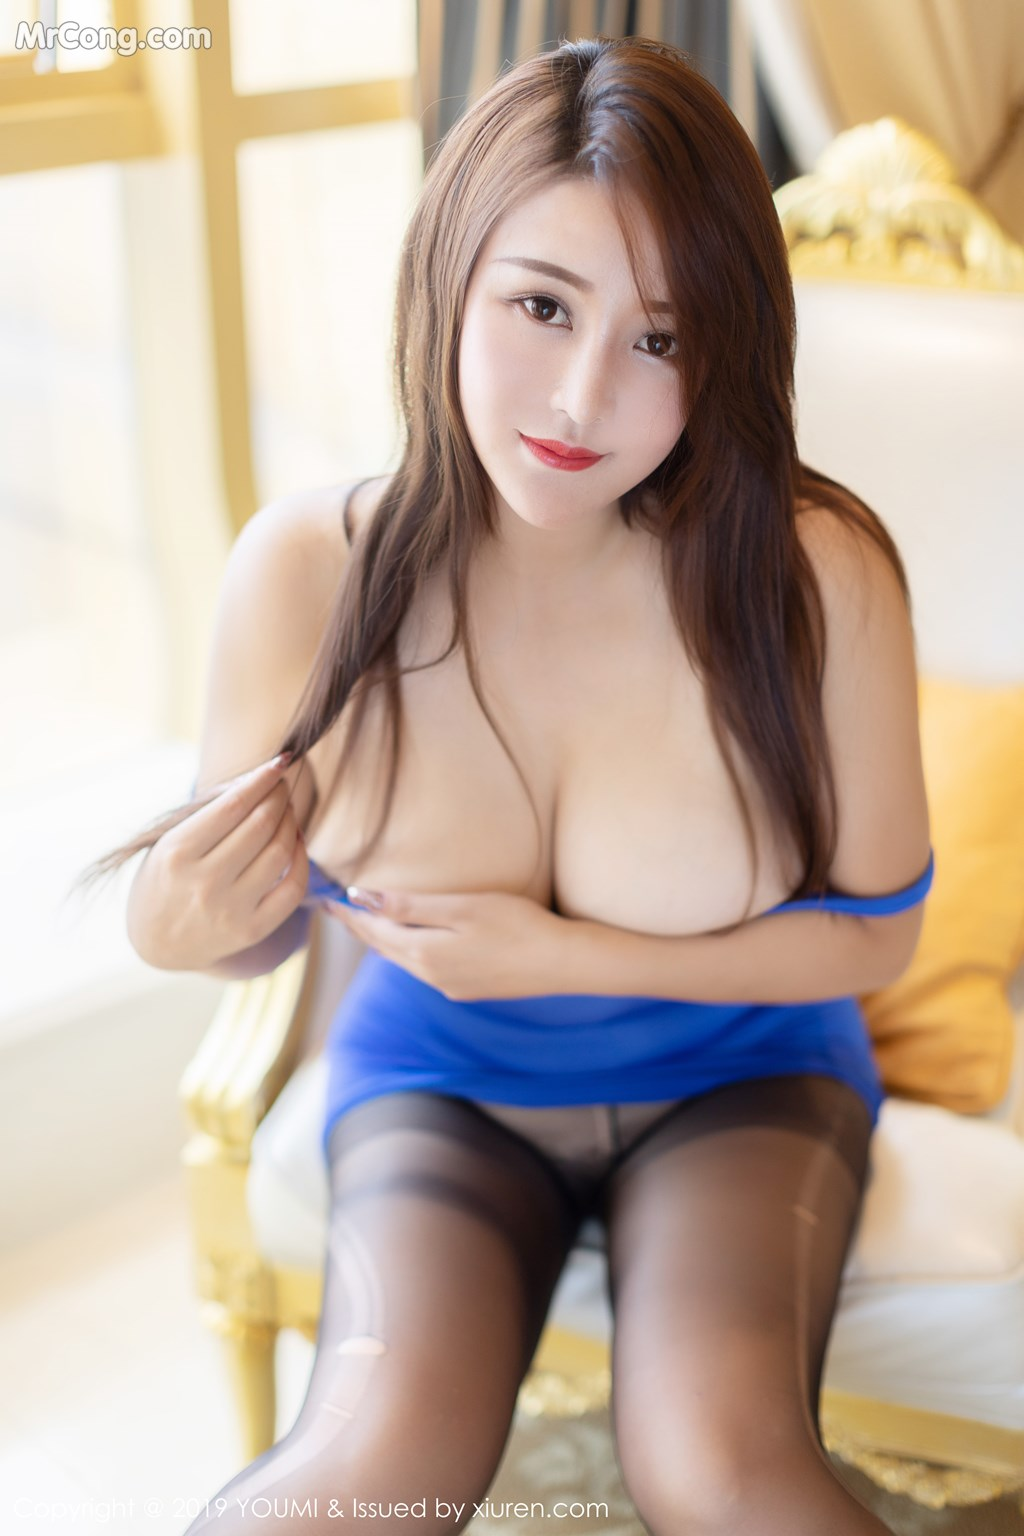 Image YouMi-Vol.341-ber-MrCong.com-009 in post YouMi Vol.341: 潘琳琳ber (56 ảnh)